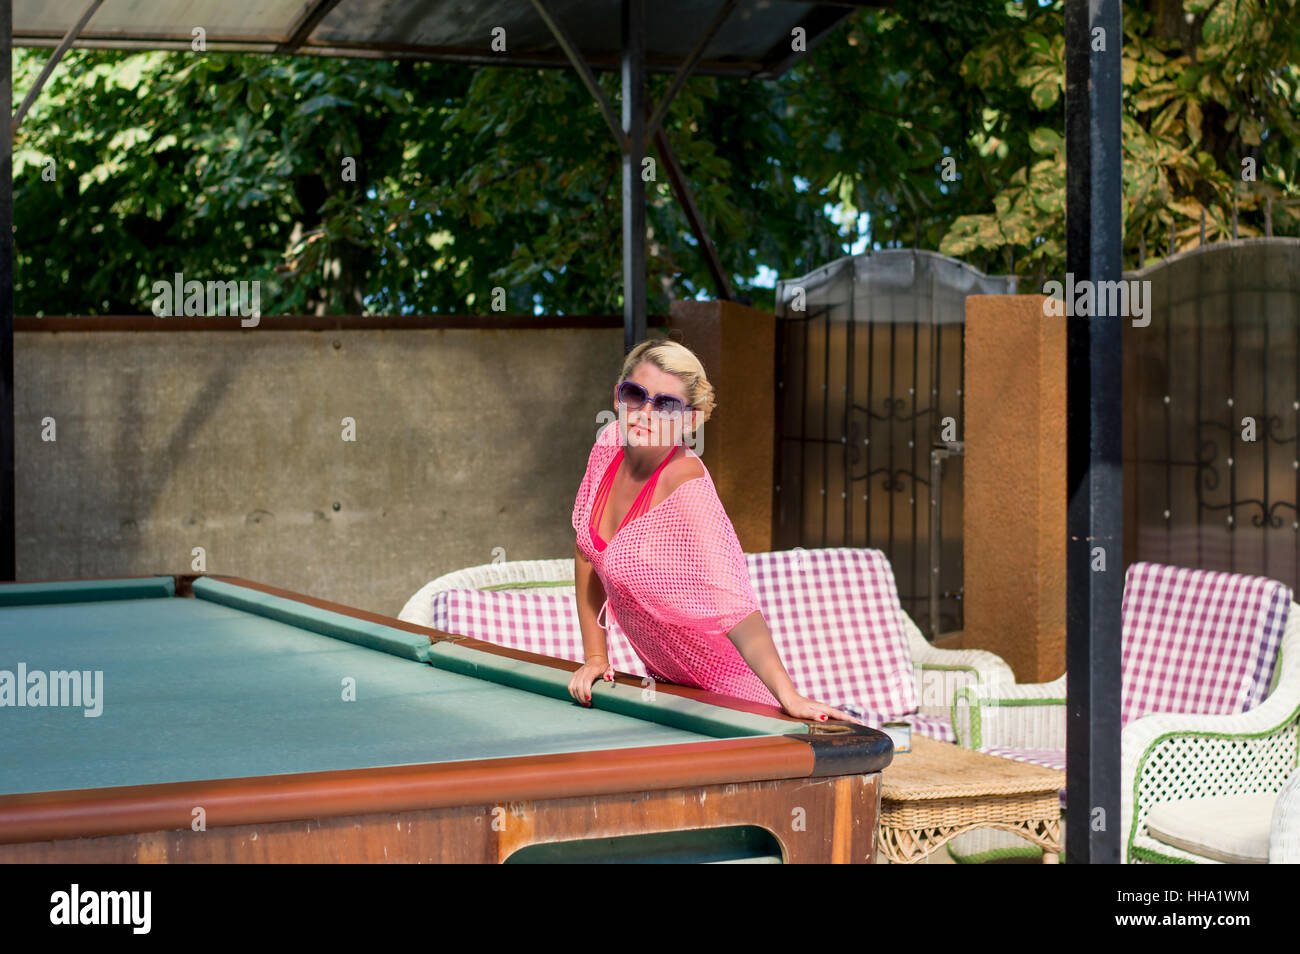 the beautiful woman rests on a billiard table - Stock Image